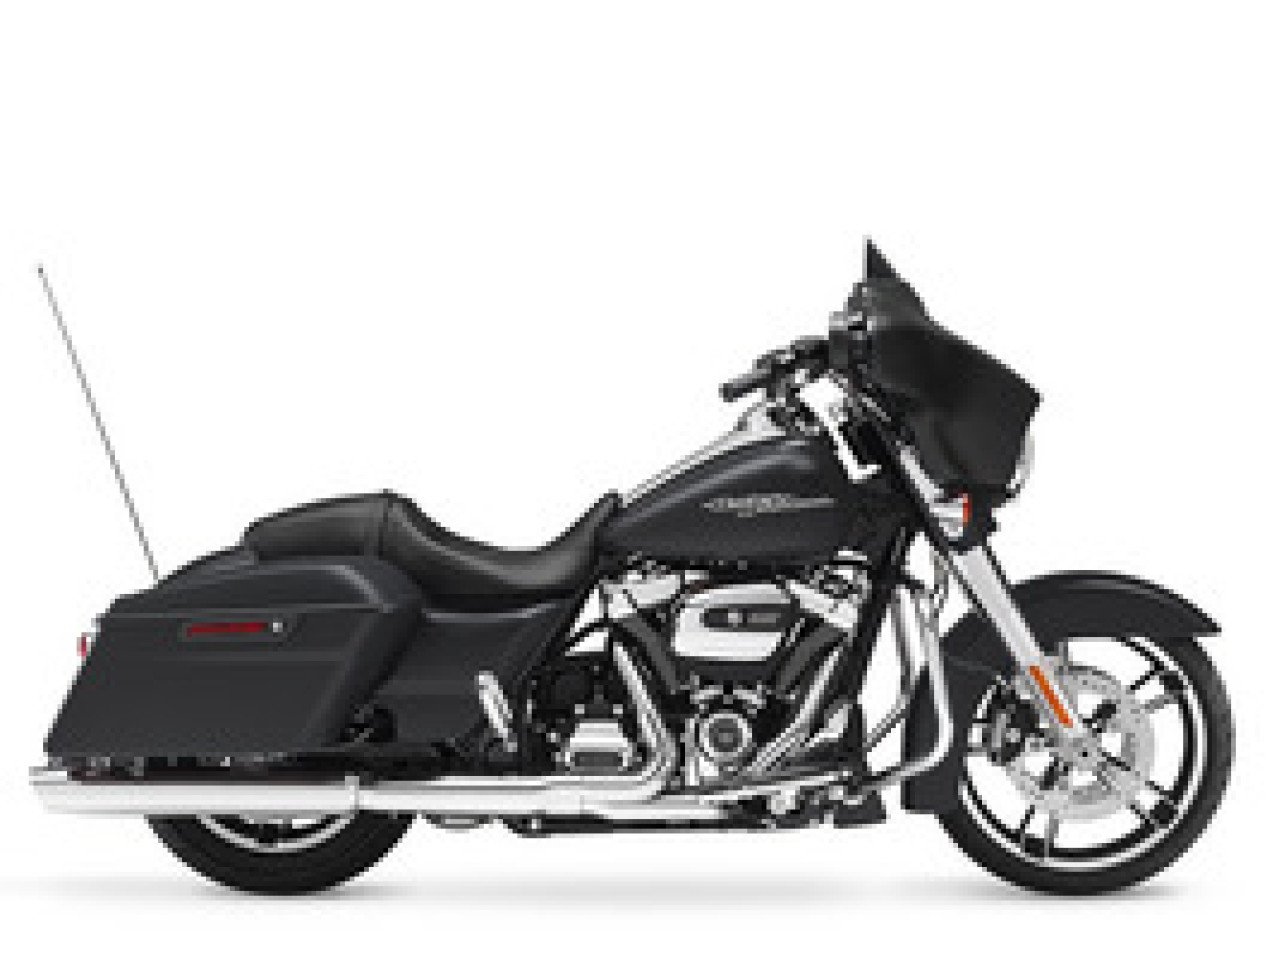 2017 Harley Davidson Touring Street Glide Special for sale